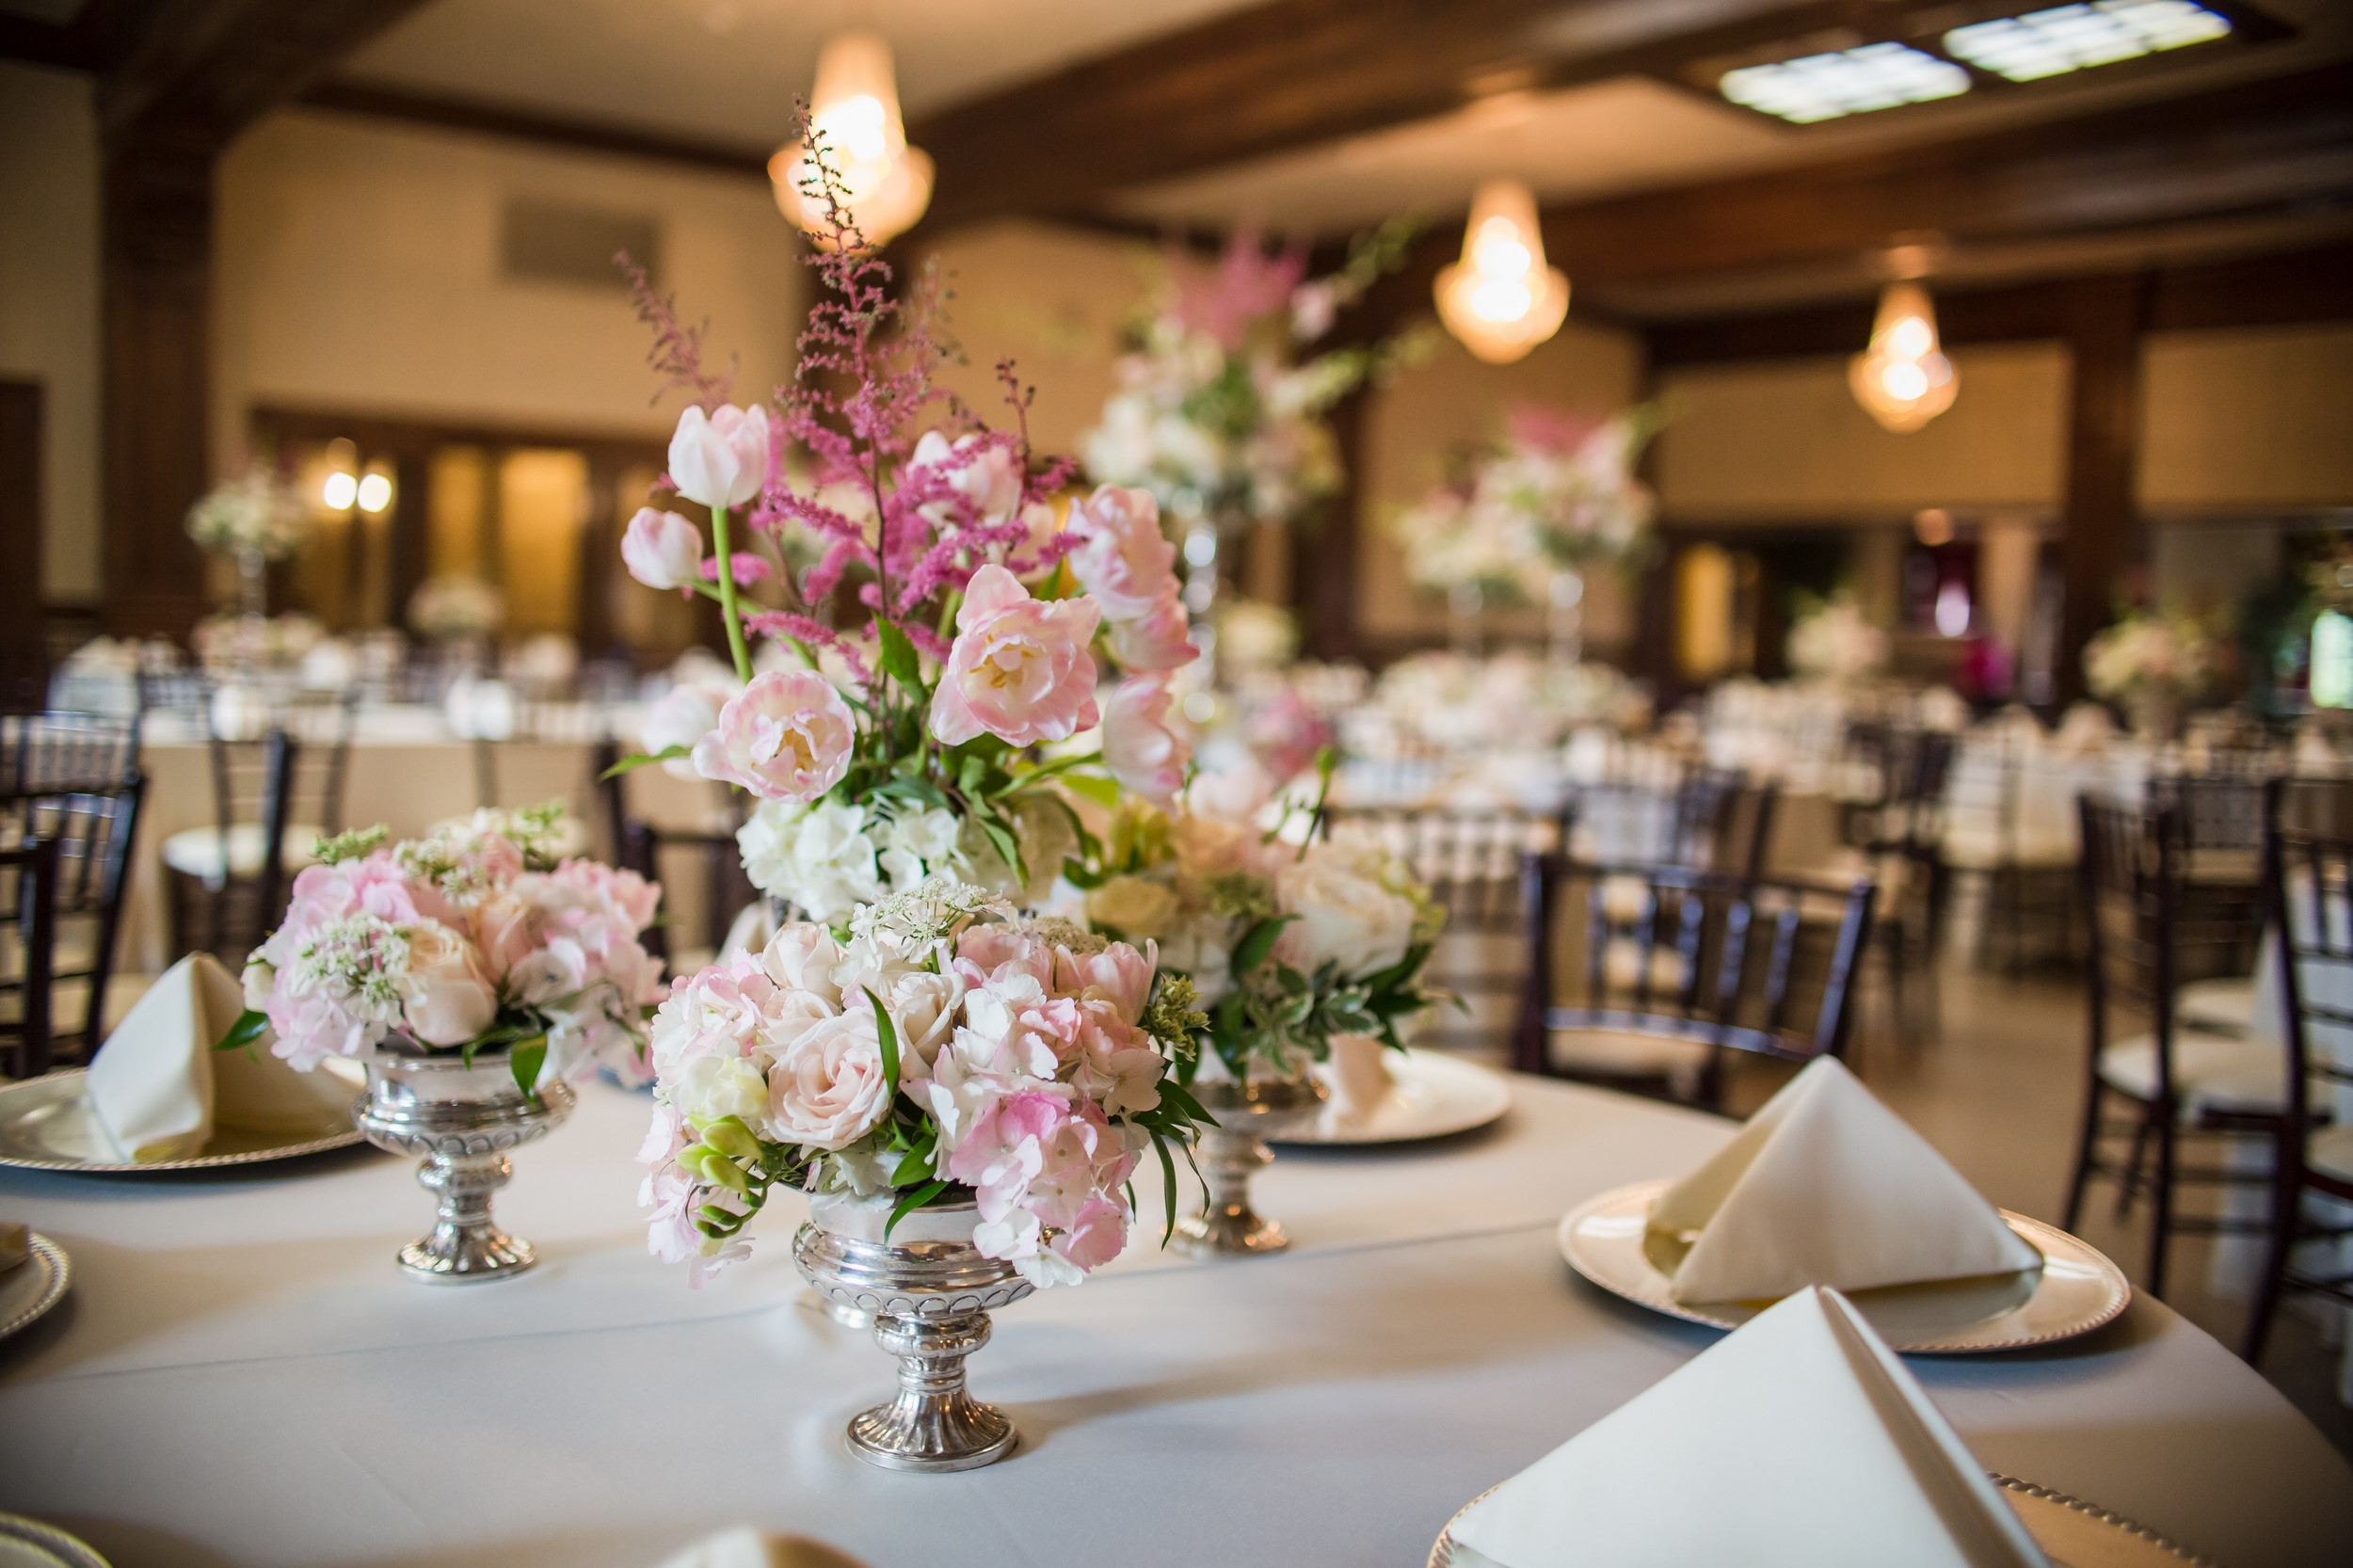 Wedding centerpieces in a reception hall